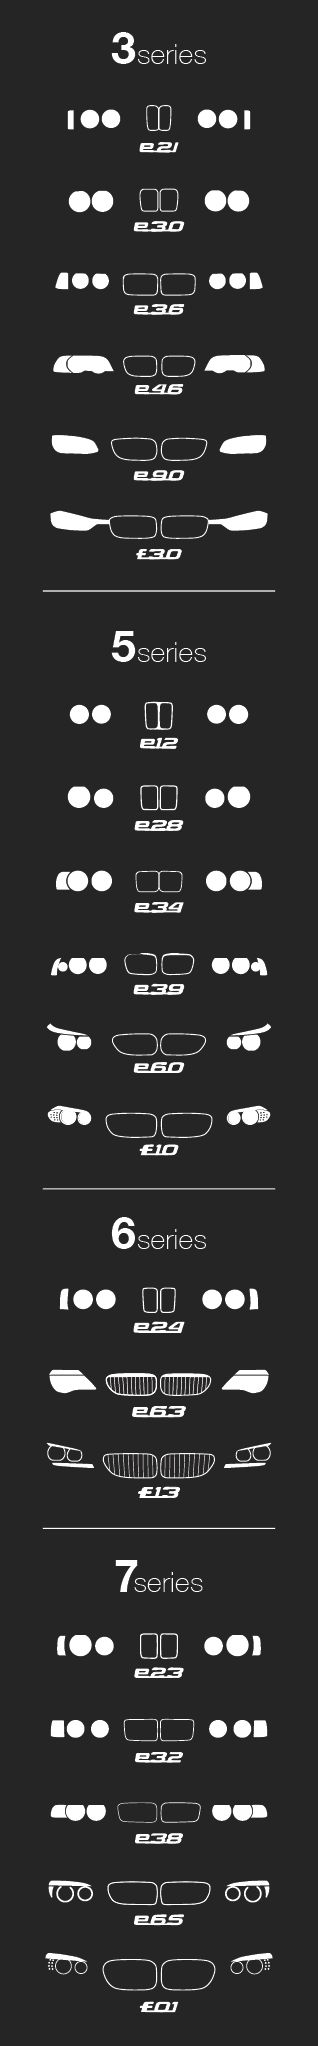 The Evolution of the BMW 3, 5, 6, and 7 Series' Headlight and Kidney Grill Design.  Available as a shirt, poster, iPhone case and more. Featuring the e21, e30, e36, e46, e90, f30, e24, e63, f13, e23, e32, e38, e65, f01, e39, e60, f10, e61